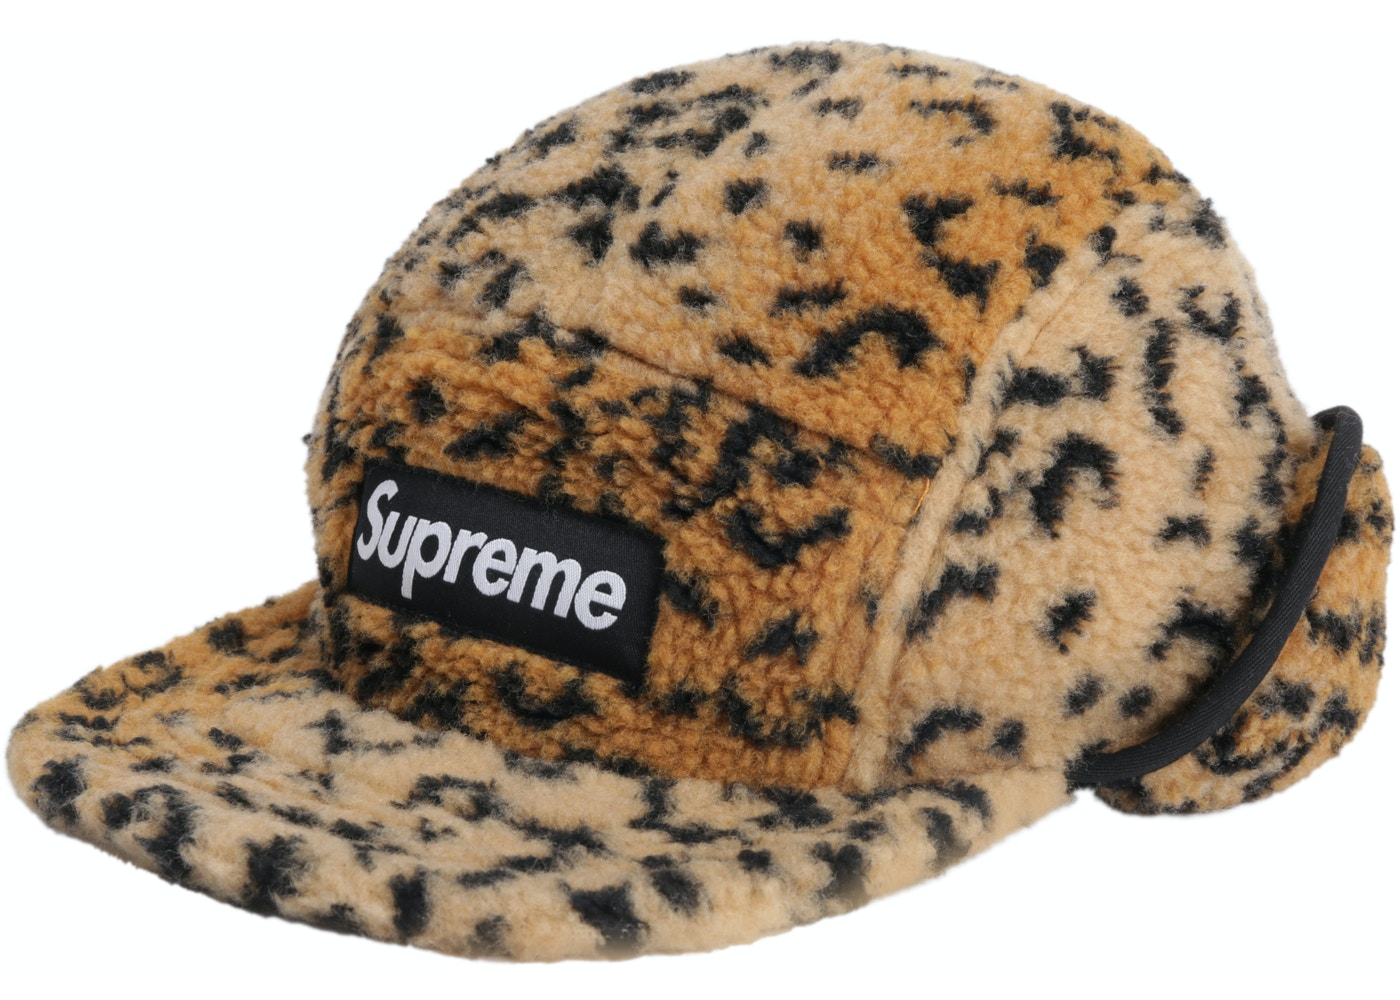 9ab2cf6a Supreme Leopard Polar Fleece Earflap Camp Cap Gold - FW17